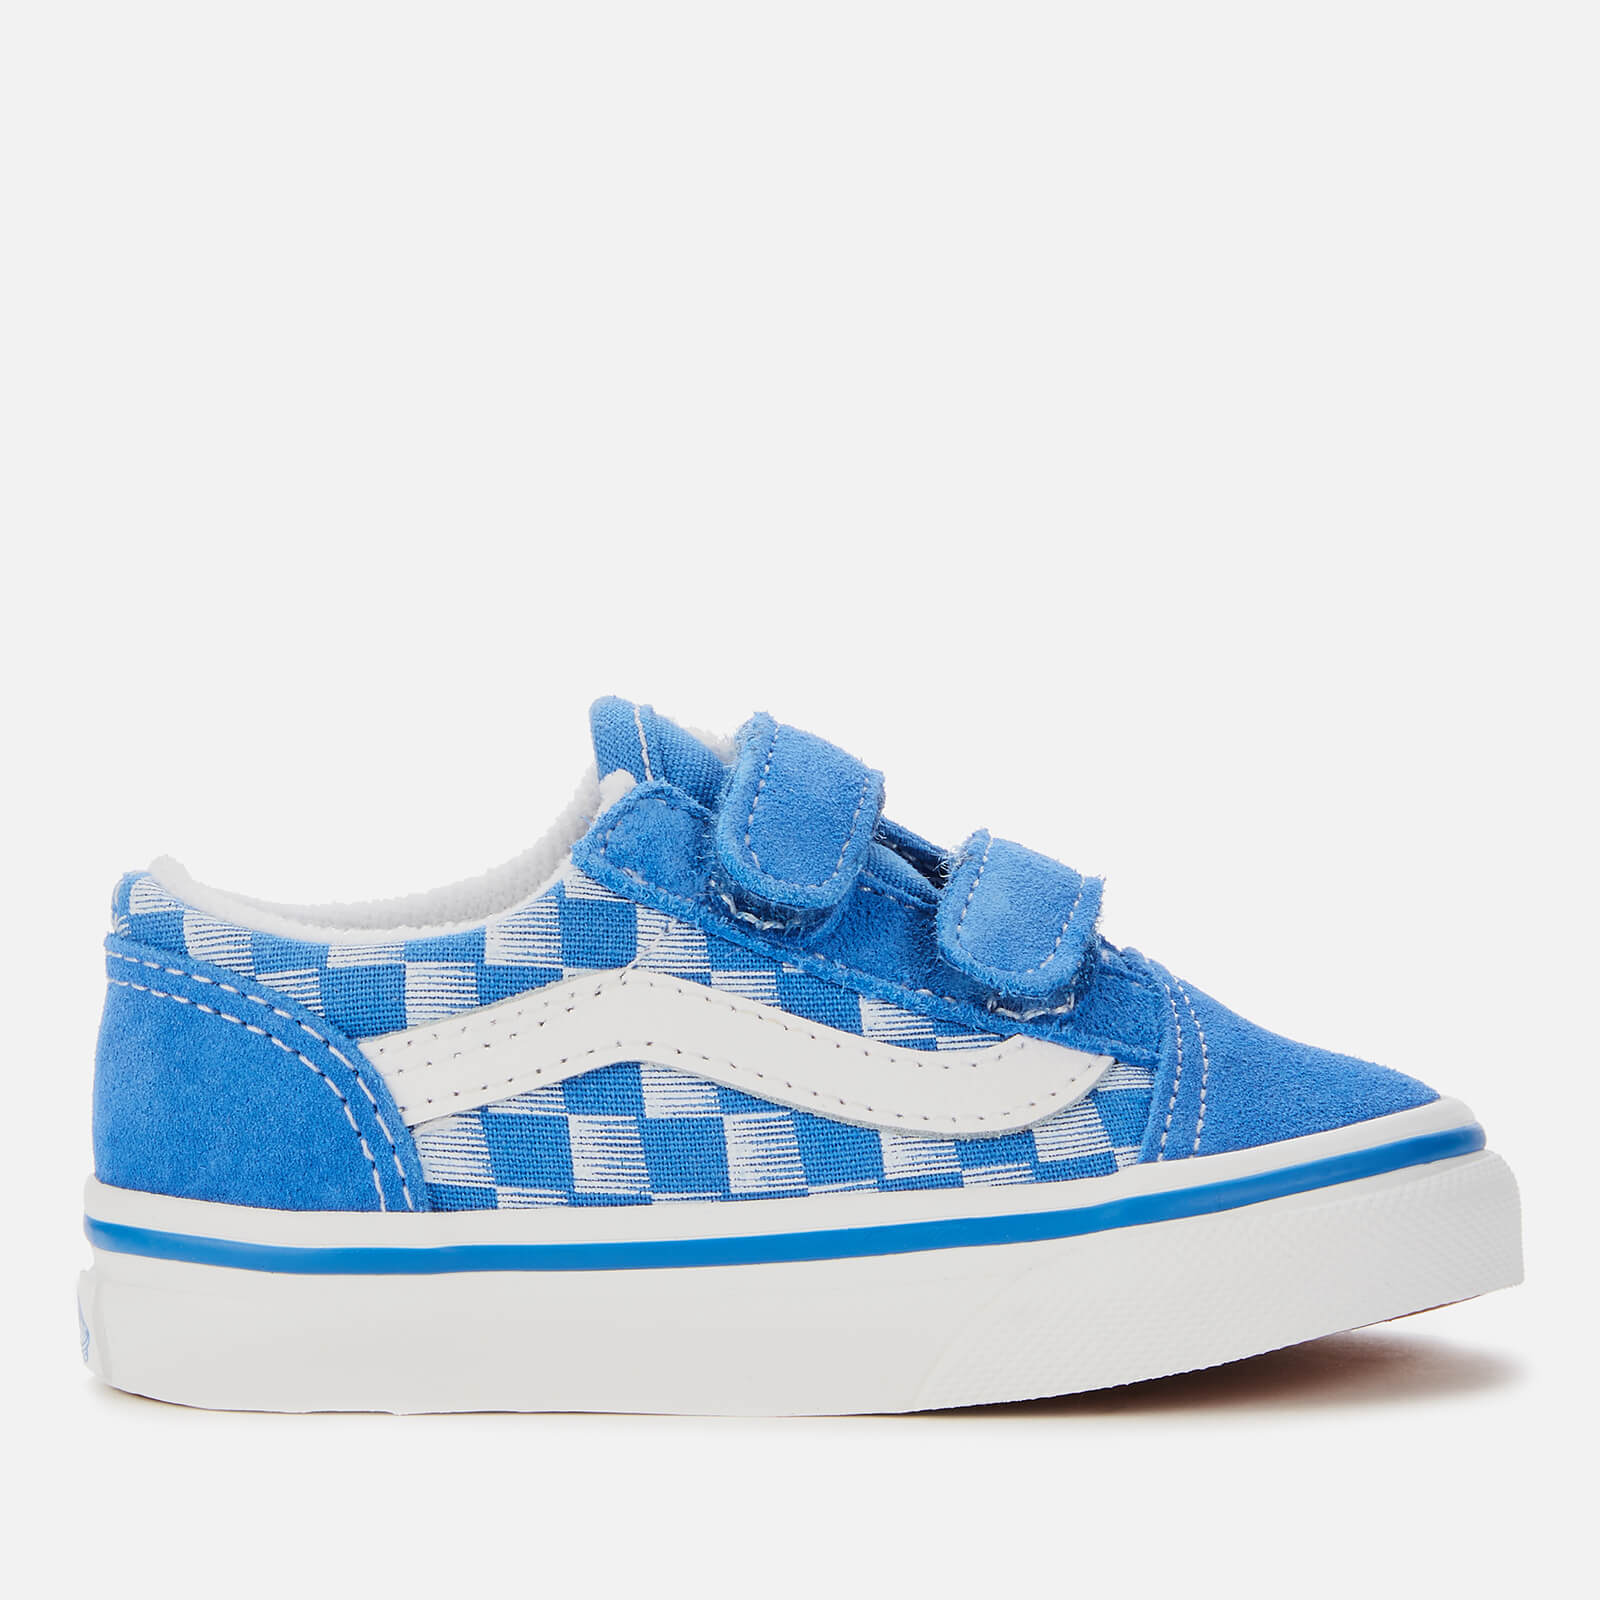 Click to view product details and reviews for Vans Toddlers Racers Edge Old Skool Velcro Trainers Blue True White Uk 3 Toddler.